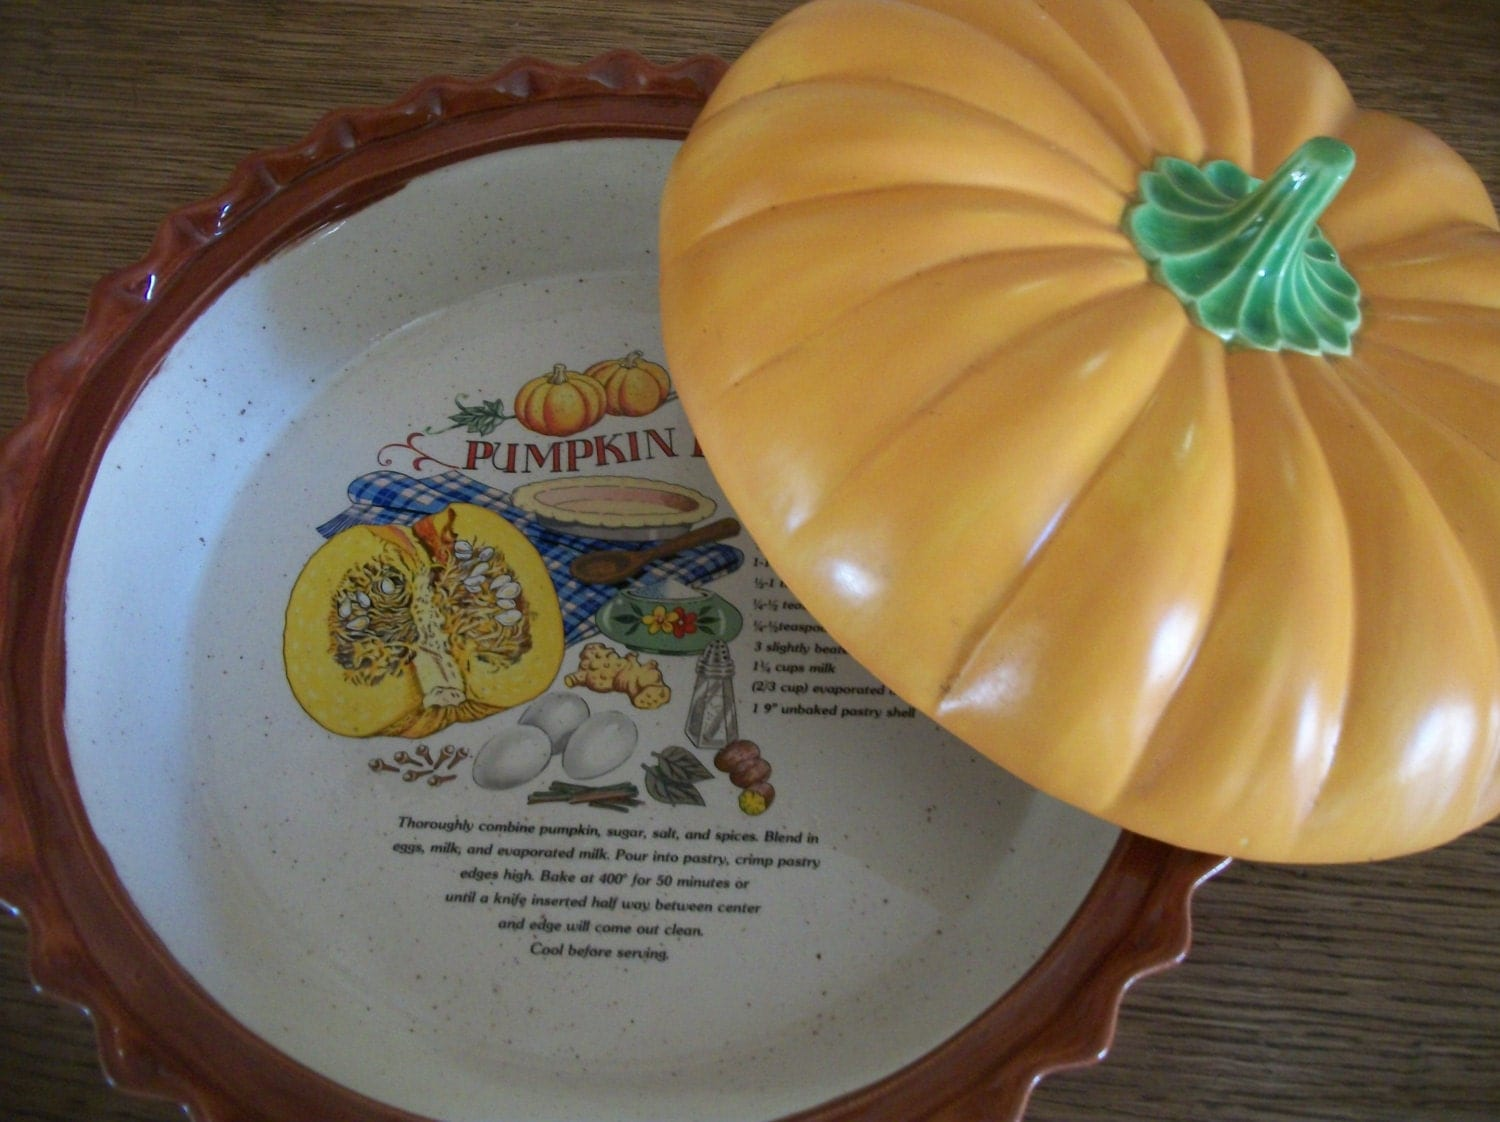 Pumpkin Pie Covered Serving Dish Ceramic Bakeware Holiday